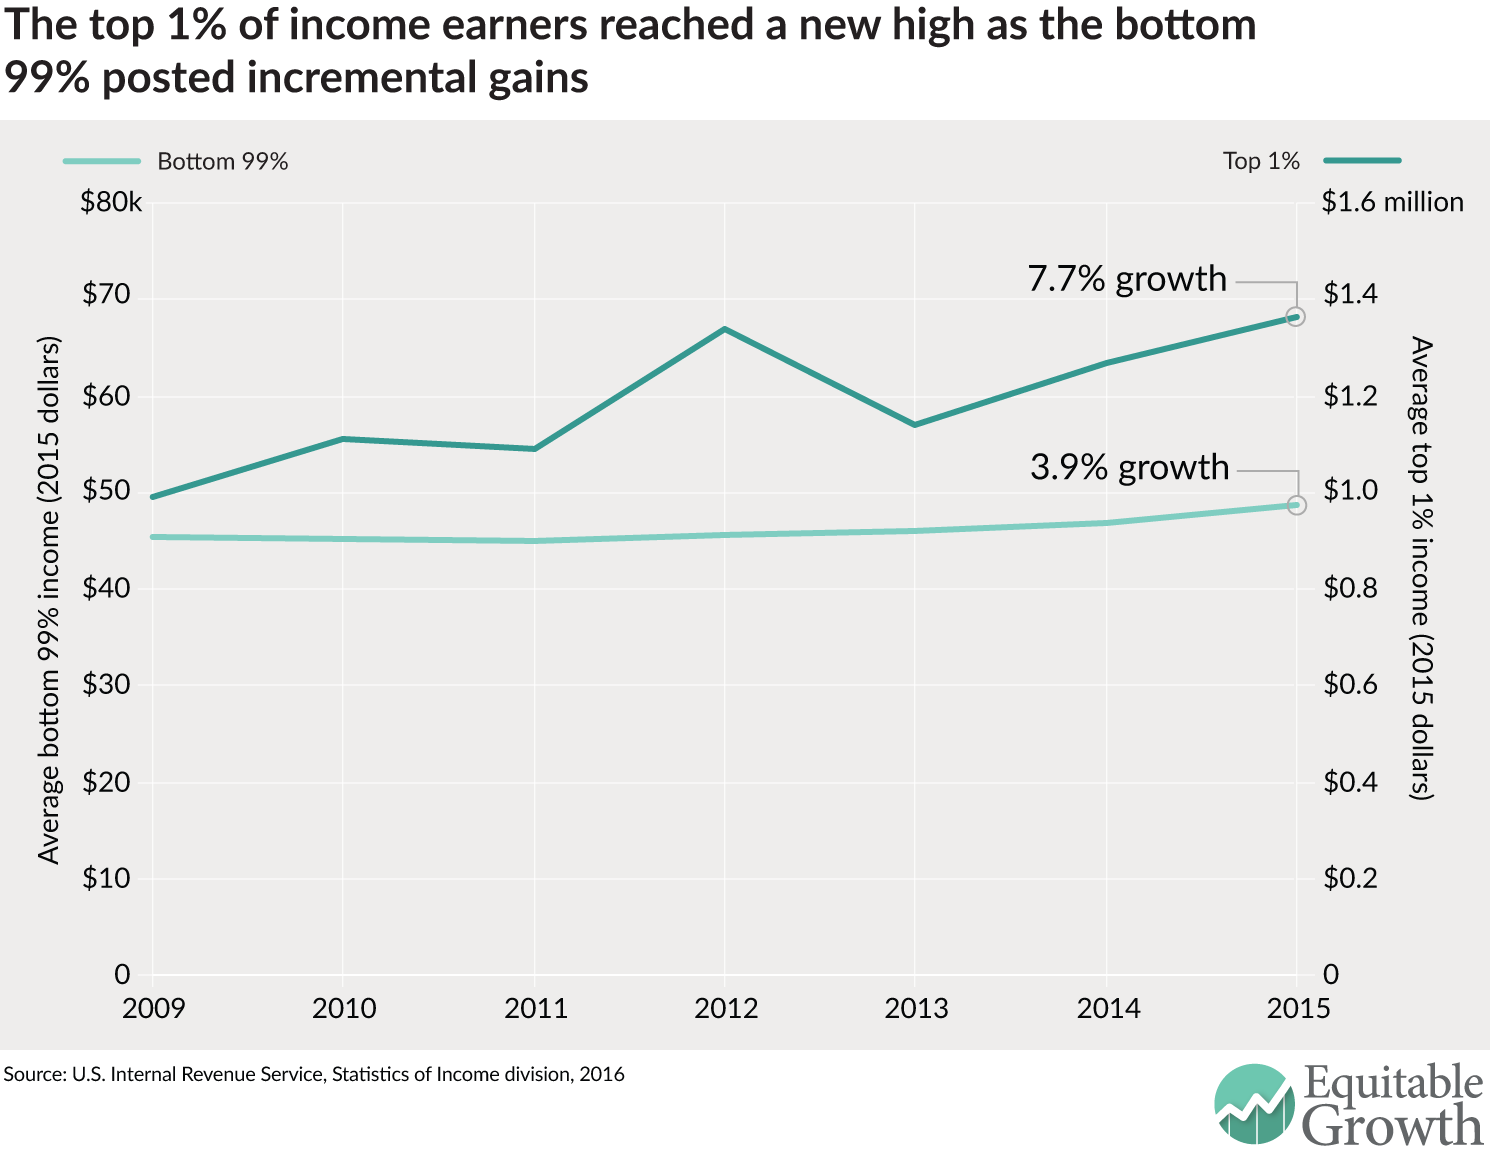 The top 1% of income earners reached a new high as the bottom 99% posted incremental gains